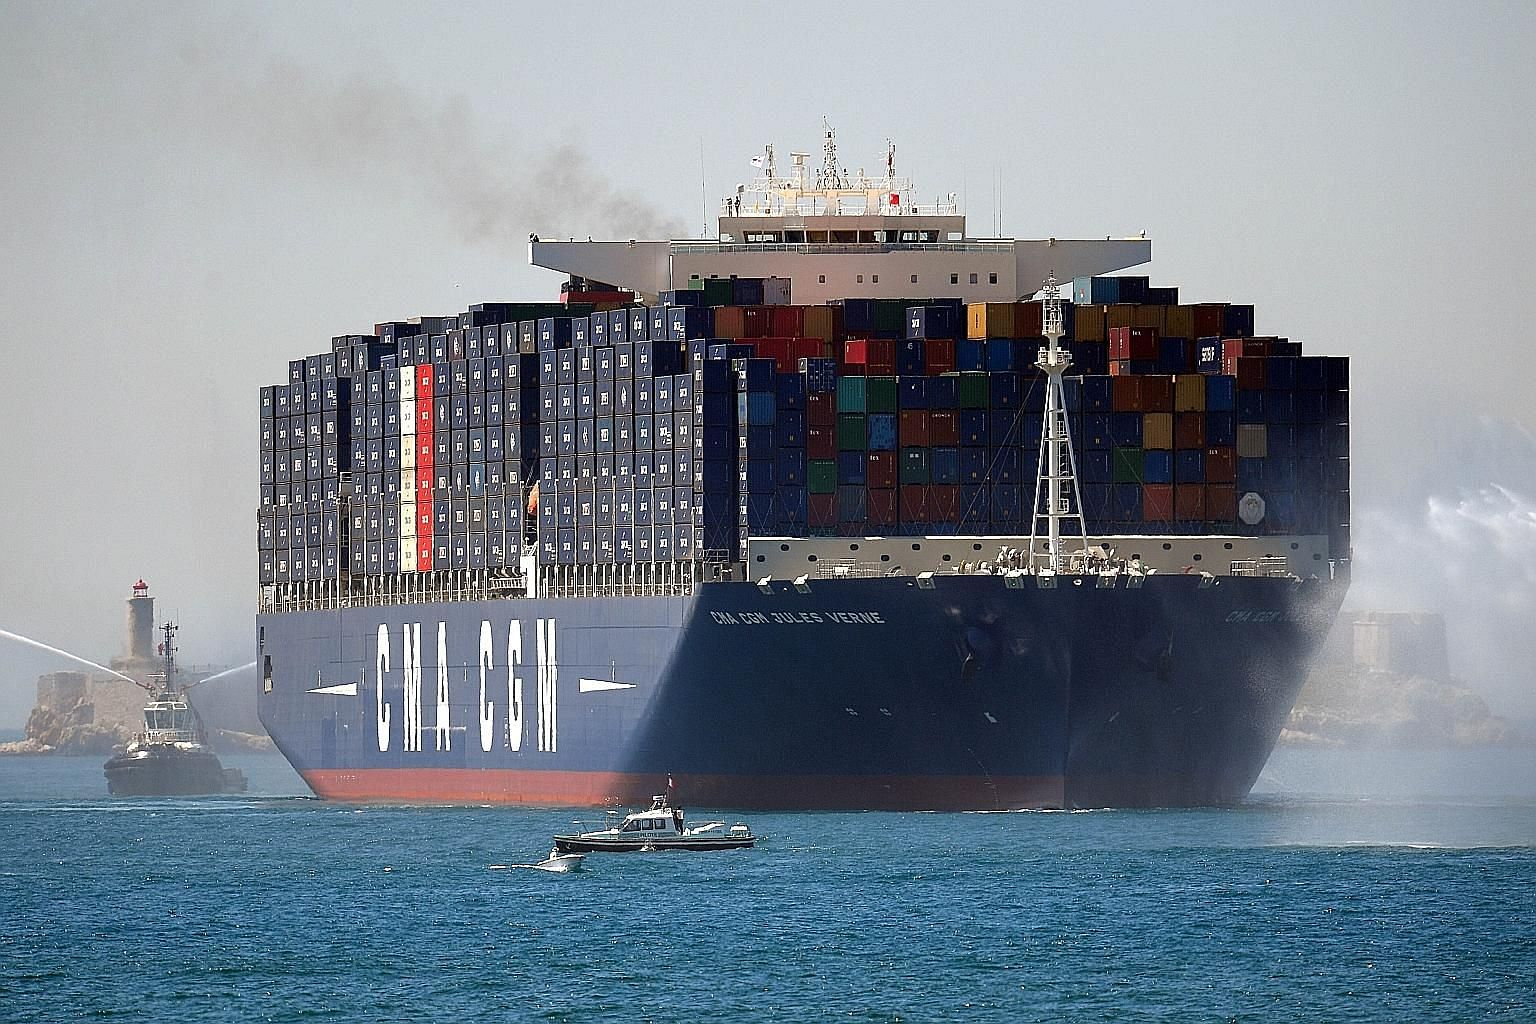 French company CMA CGM, the world's third-largest container shipping group, last month said it was buying Singapore government- owned NOL.